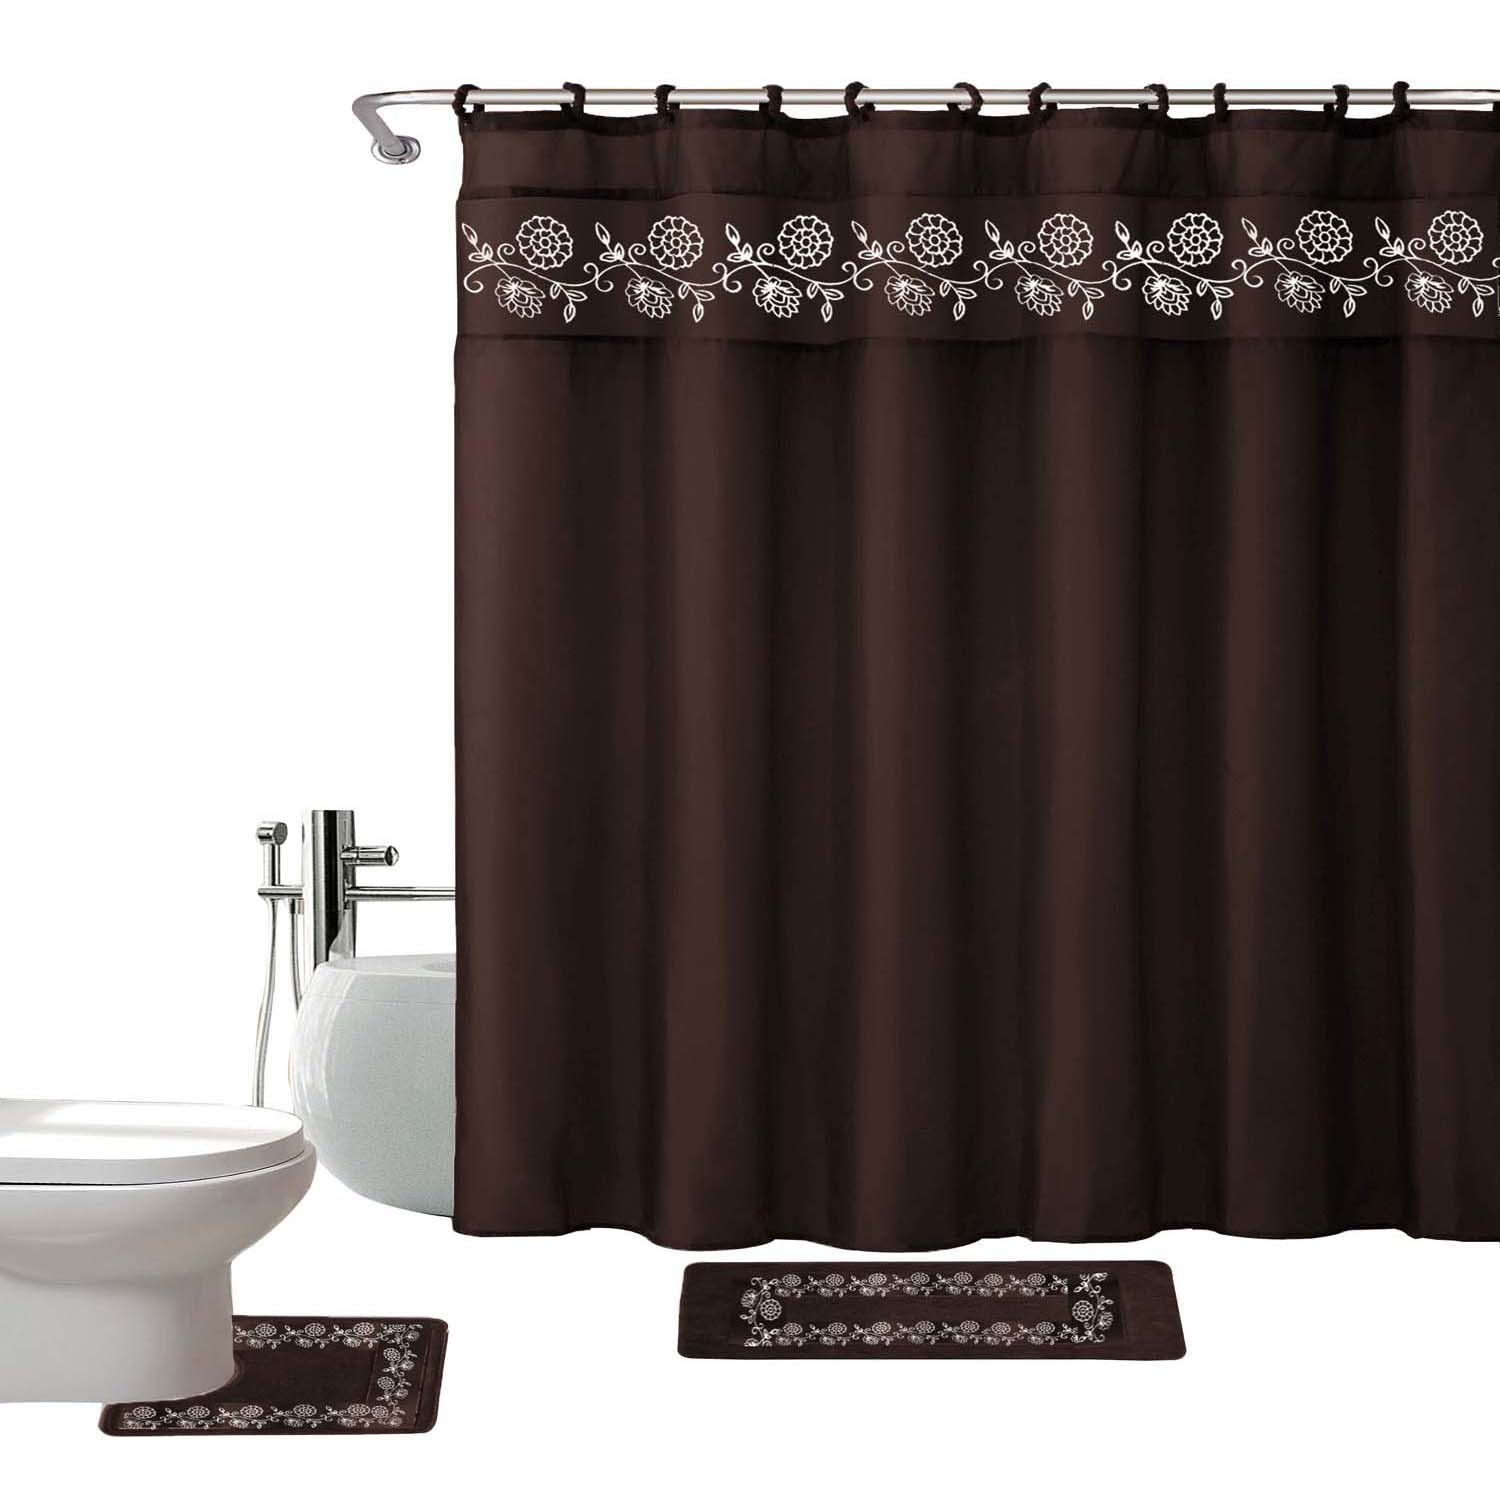 Kashi home leaves piece shower curtain set chocolate products